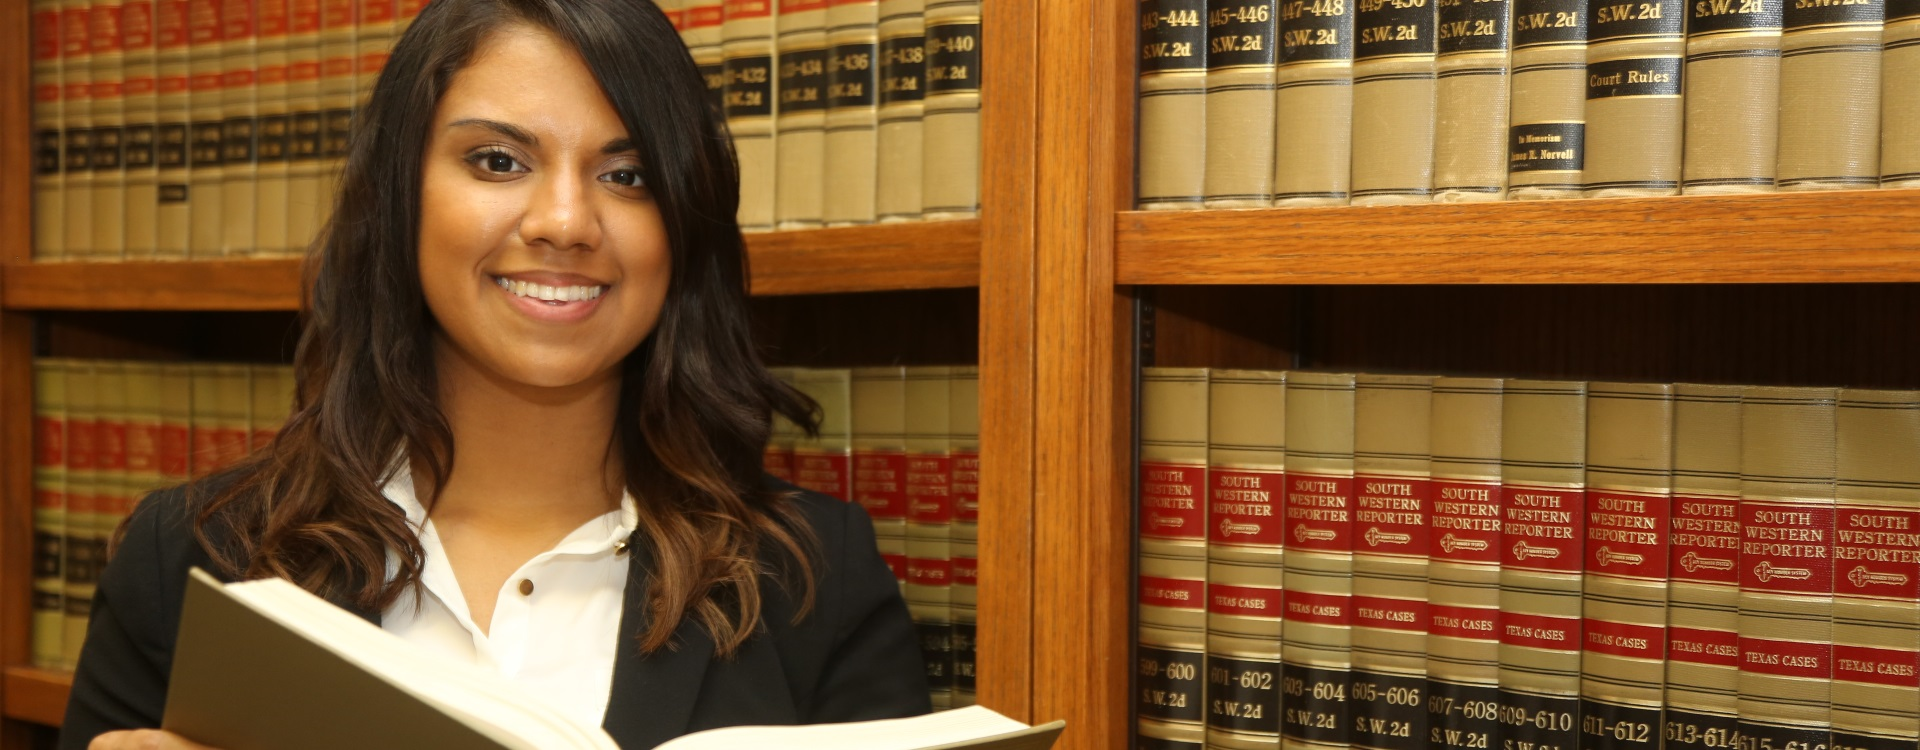 Dallas Career Programs - Paralegal Program